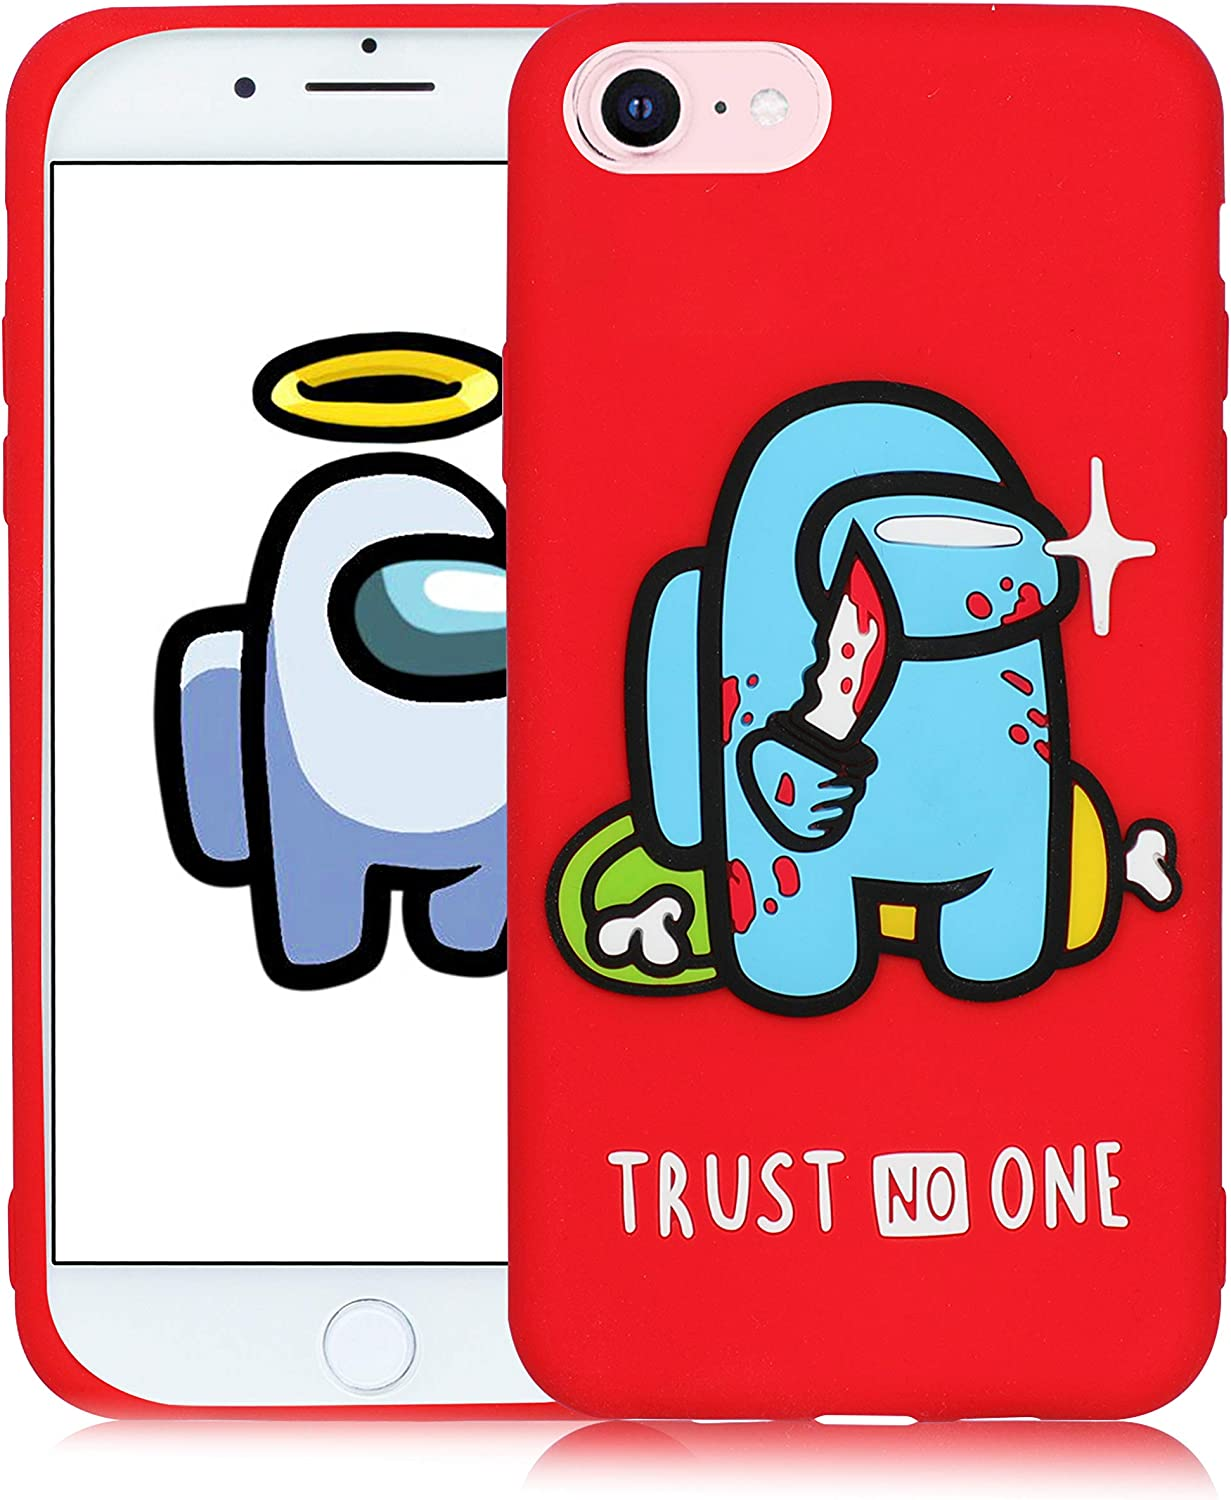 Oqplog Case for iPhone 7/8/6S/6/SE 2020 Cartoon Cute 3D Kawaii Fun Red Star Kids Design Silicone Cover,Cool Funny Fashion Cases for iPhone 7/8/6S/6/SE 2020 4.7